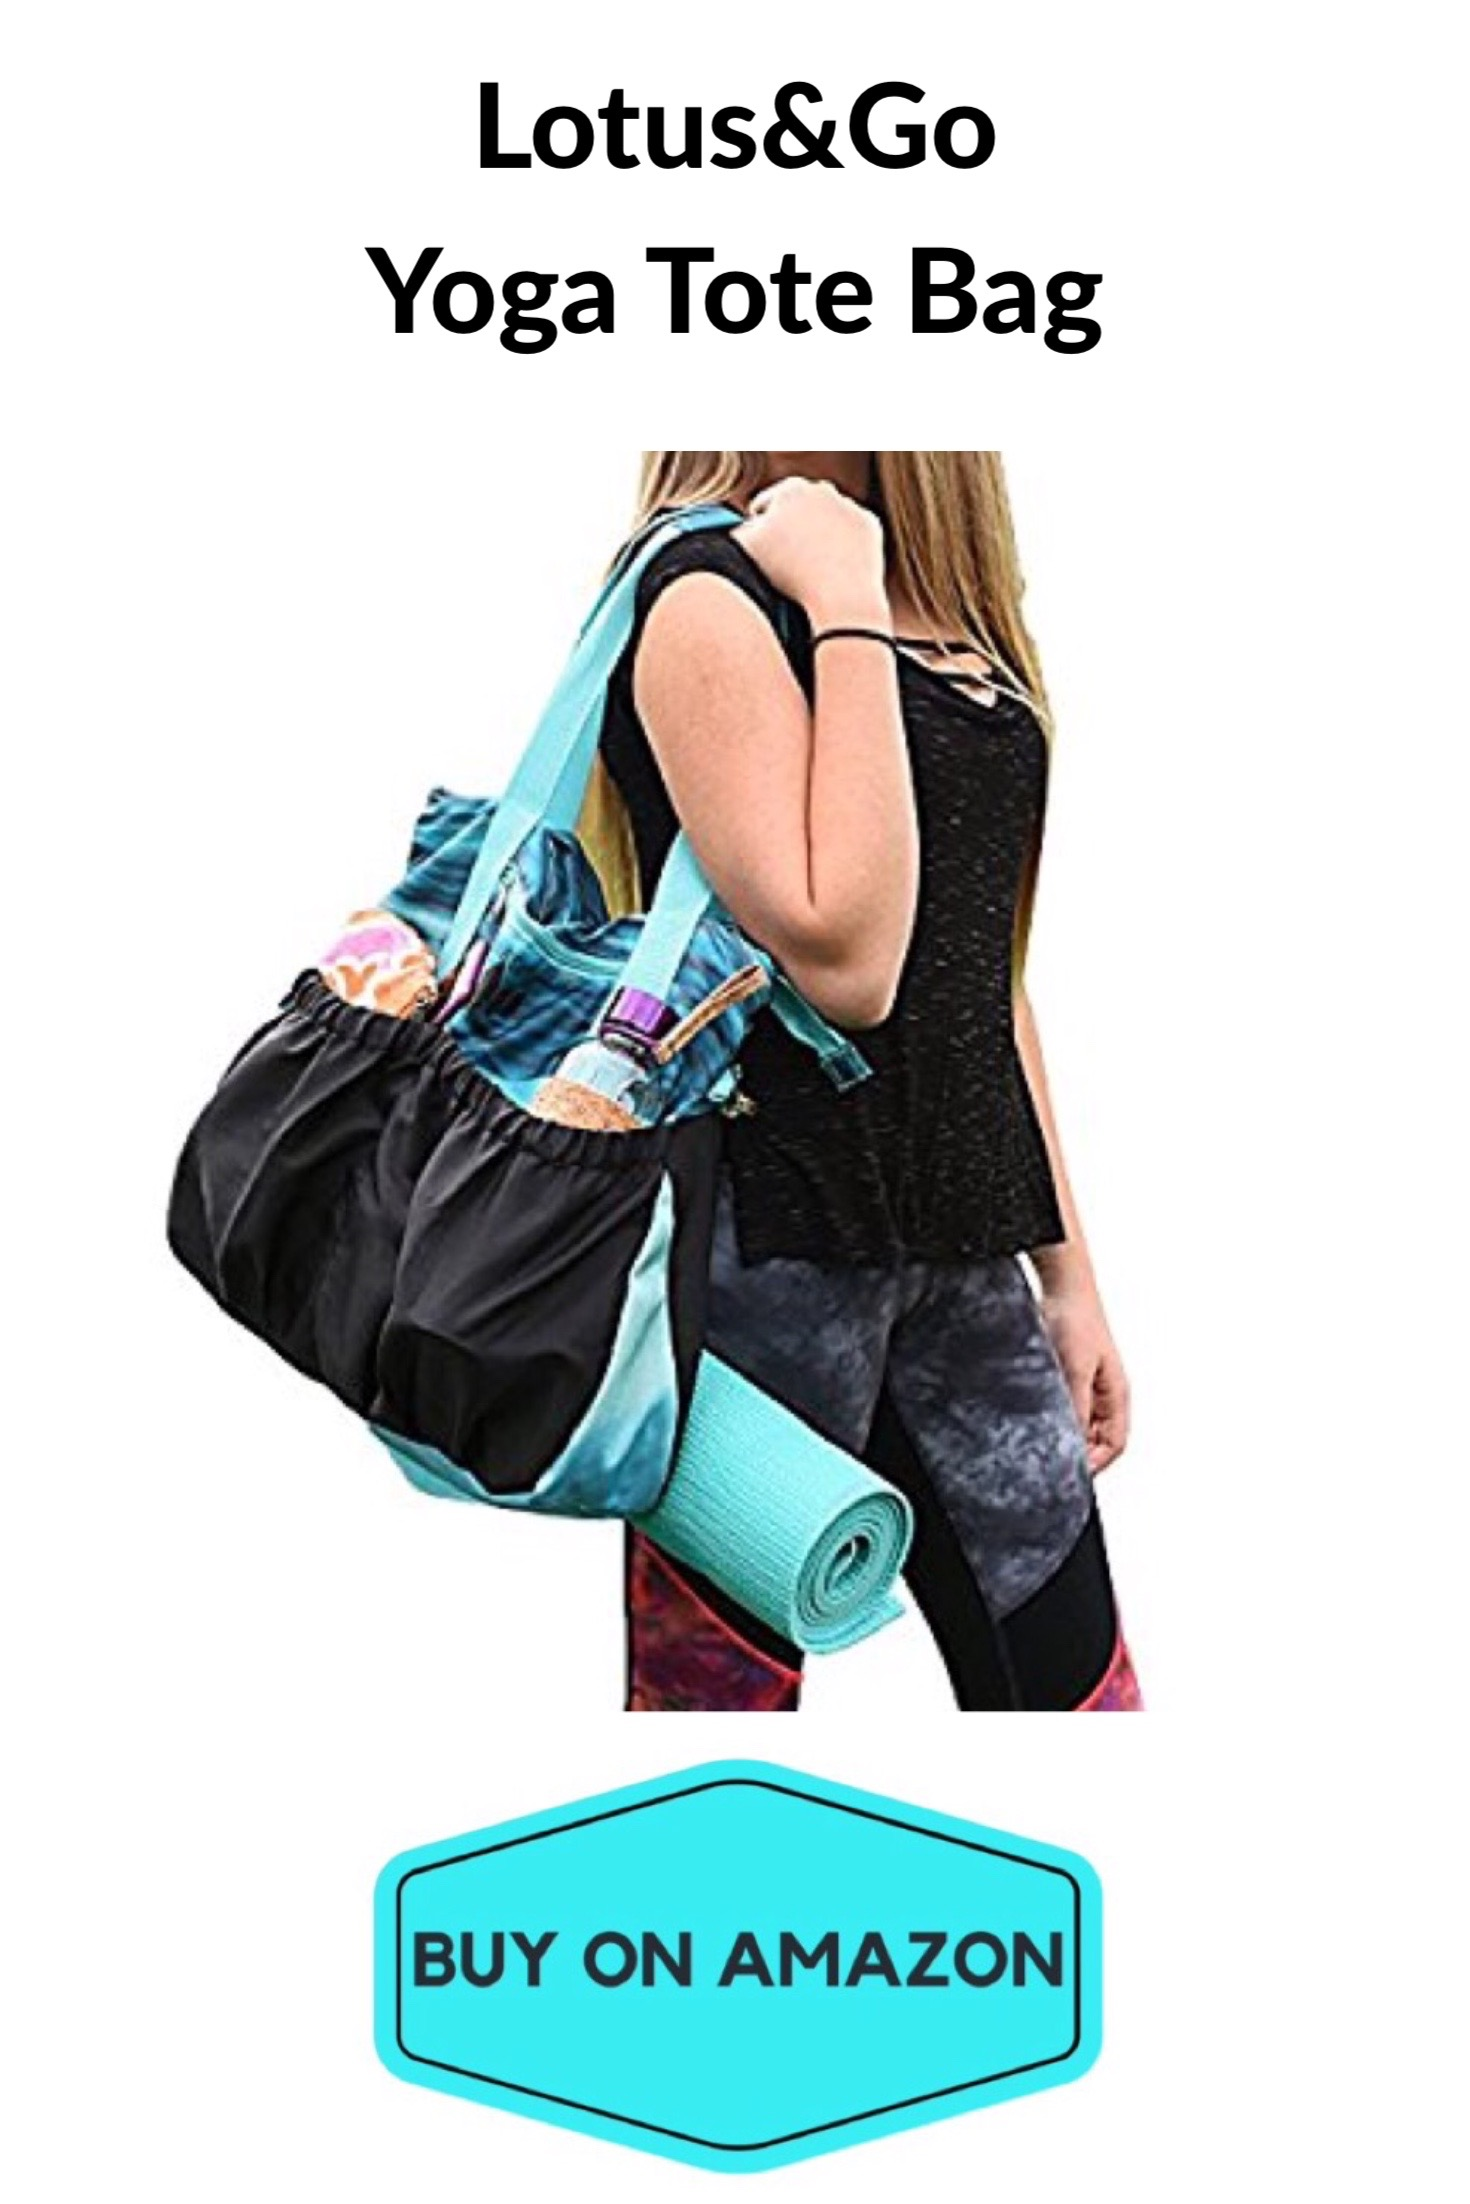 Lotus&Go Yoga Tote Bag